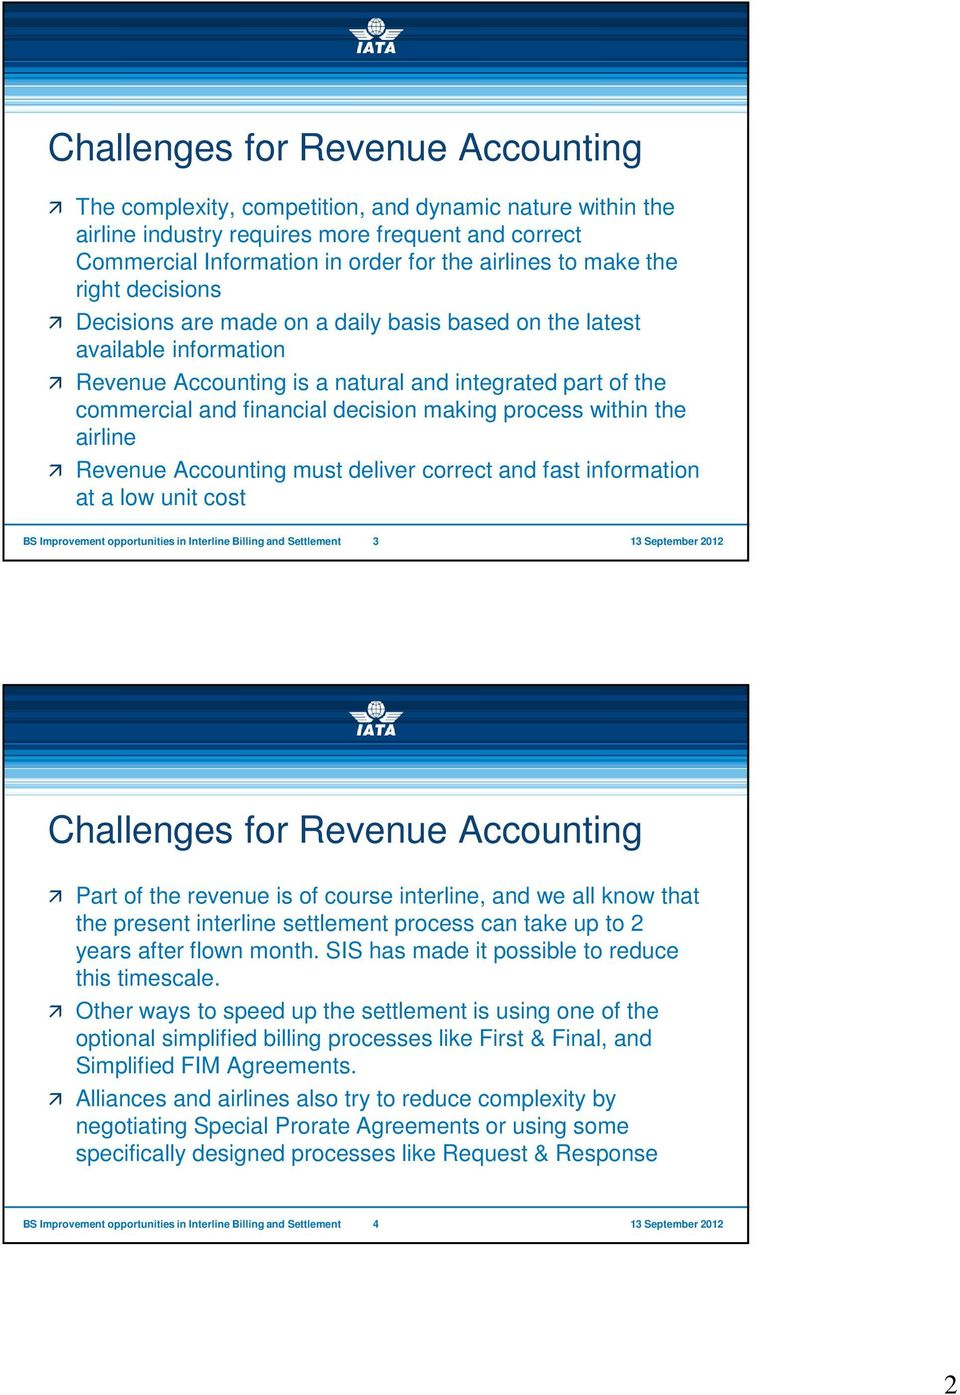 making process within the airline Revenue Accounting must deliver correct and fast information at a low unit cost BS Improvement opportunitiesin Interline Billing and Settlement 3 Challenges for